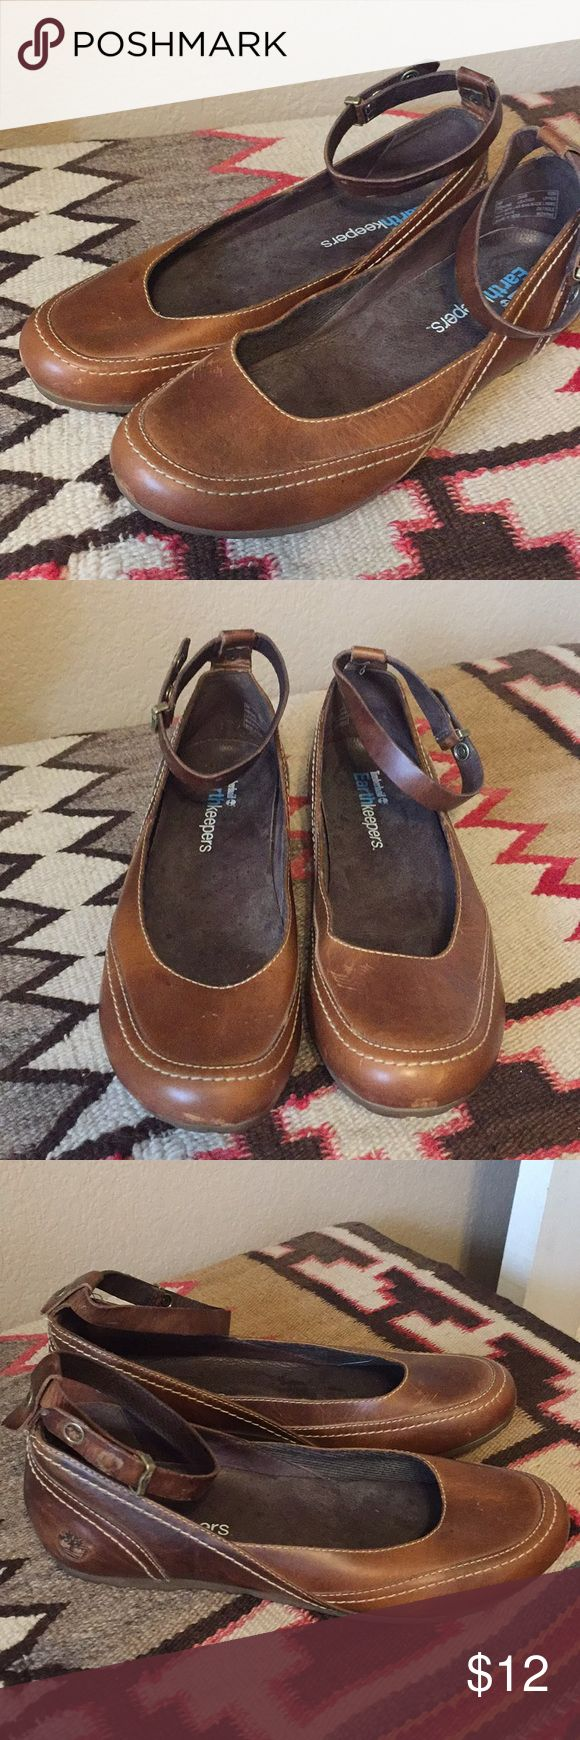 Timberland EarthKeepers Flats / Shoes Sz 9 Brown flats with an ankle strap in size 9 by Timberland EarthKeepers.  These are very comfy shoes, have scuffs on them.  Lots of life left to them. Timberland Shoes Flats & Loafers